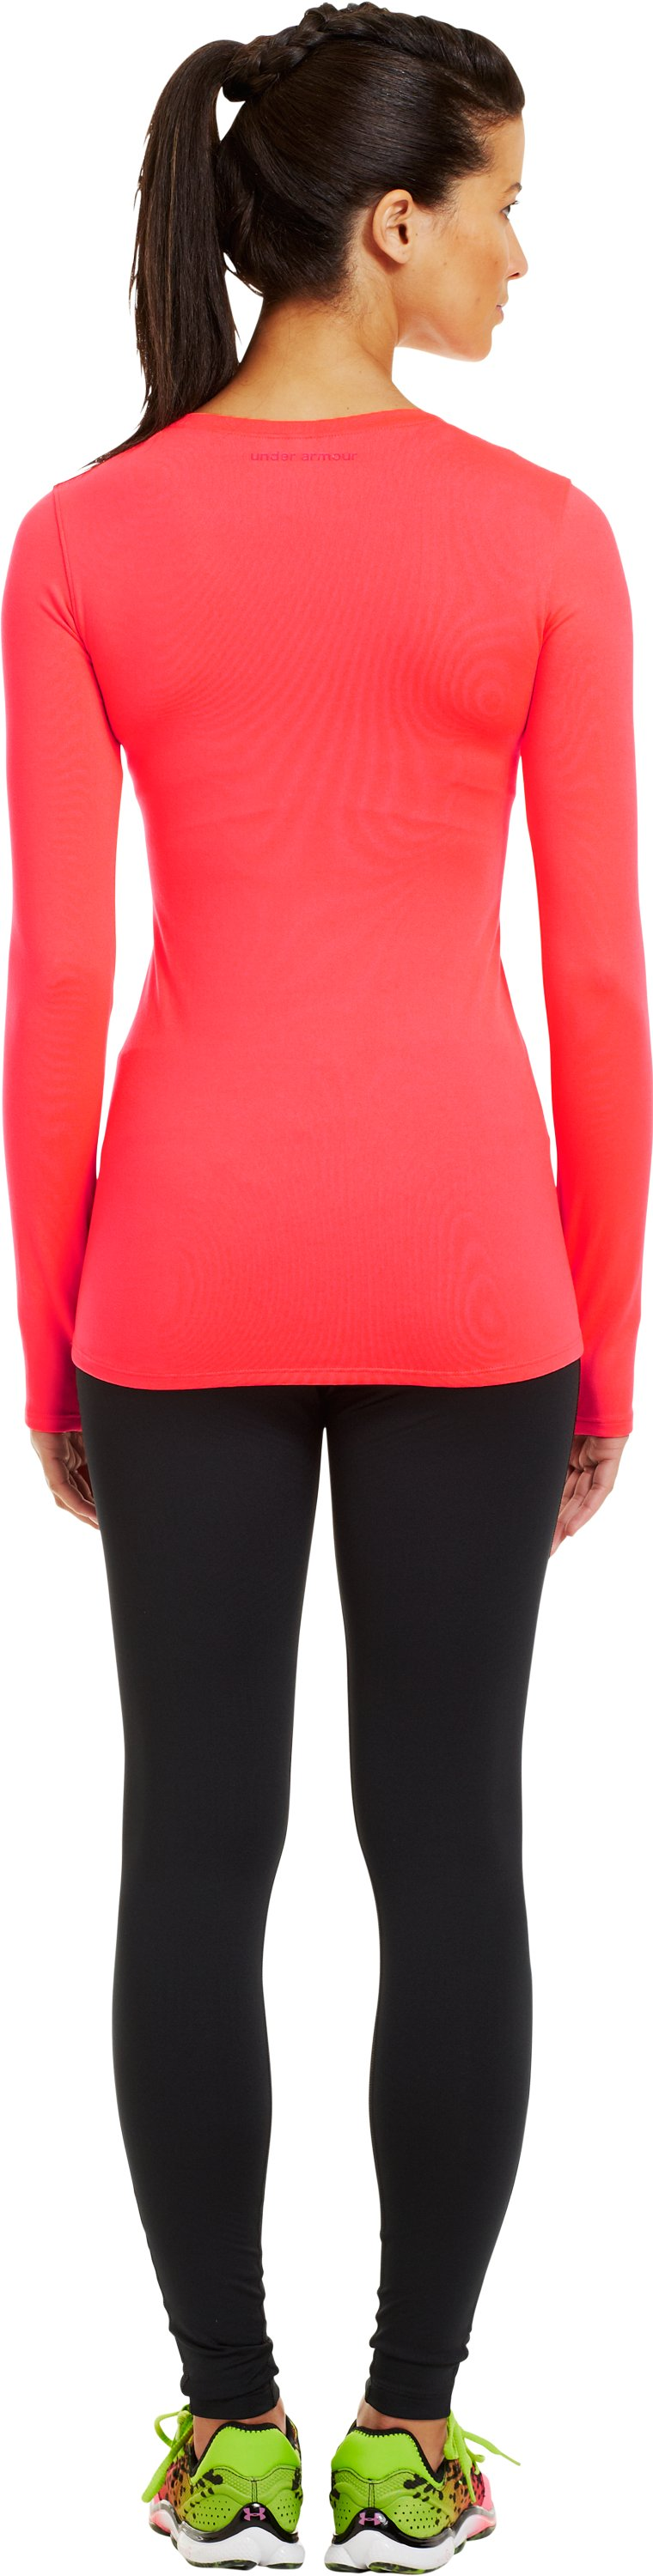 Women's ColdGear® Infrared V-Neck Long Sleeve, Neo Pulse, Back